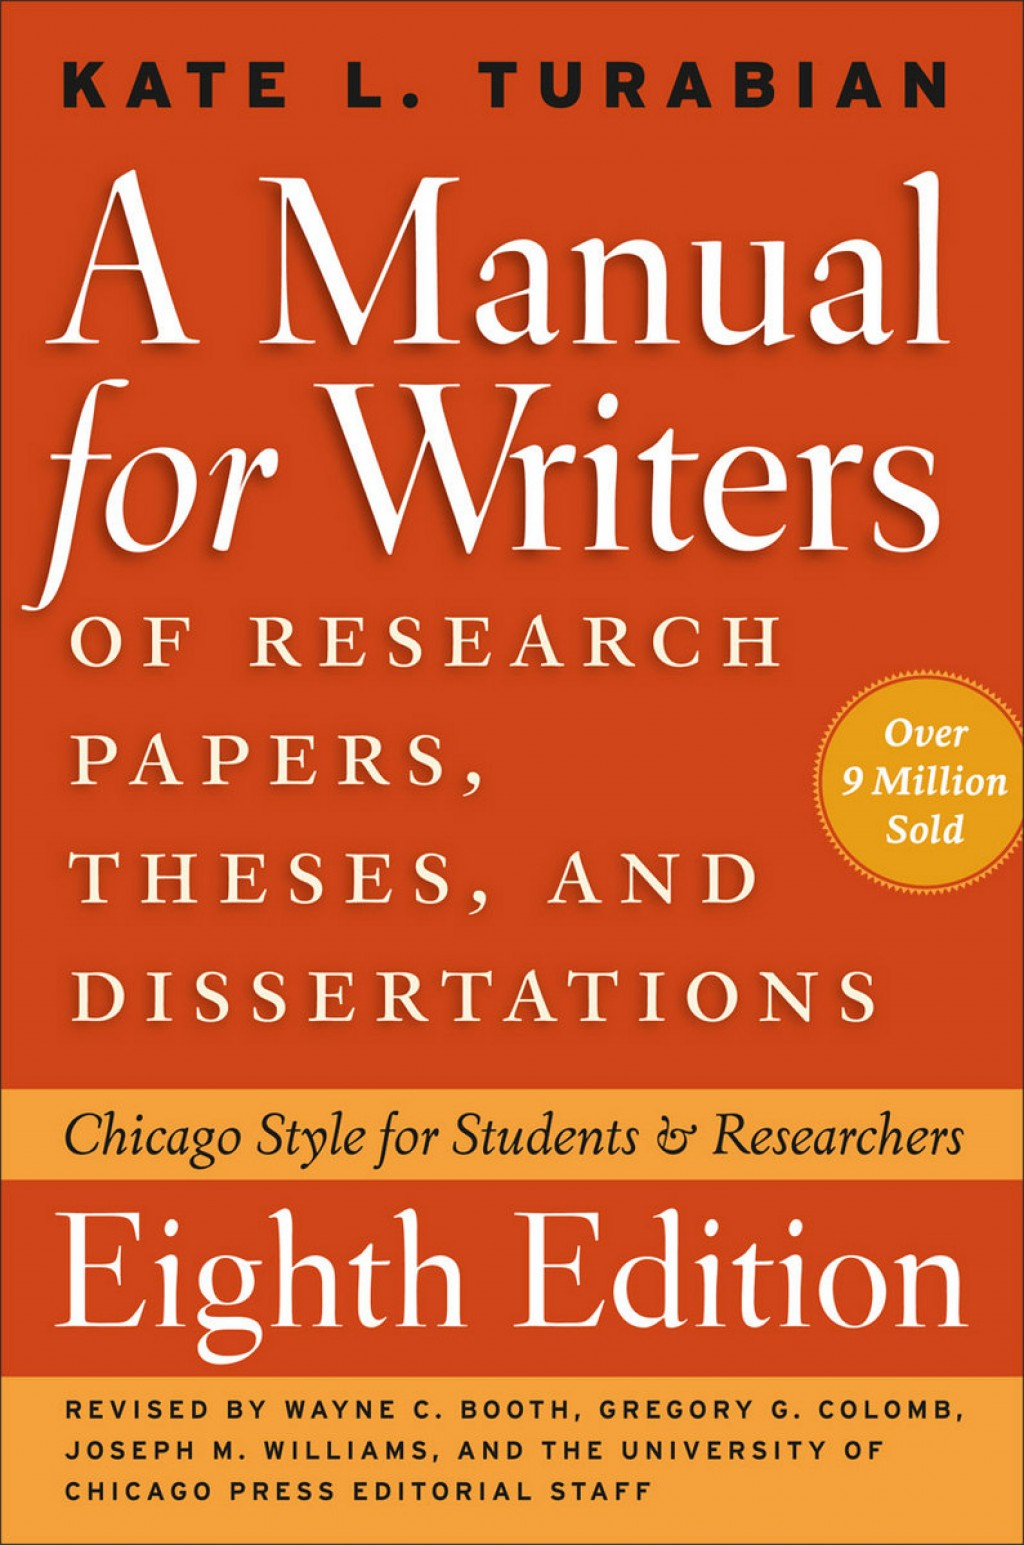 002 Research Paper Frontcover Manual For Writers Of Papers Theses And Dissertations Fearsome A Ed 8 Large